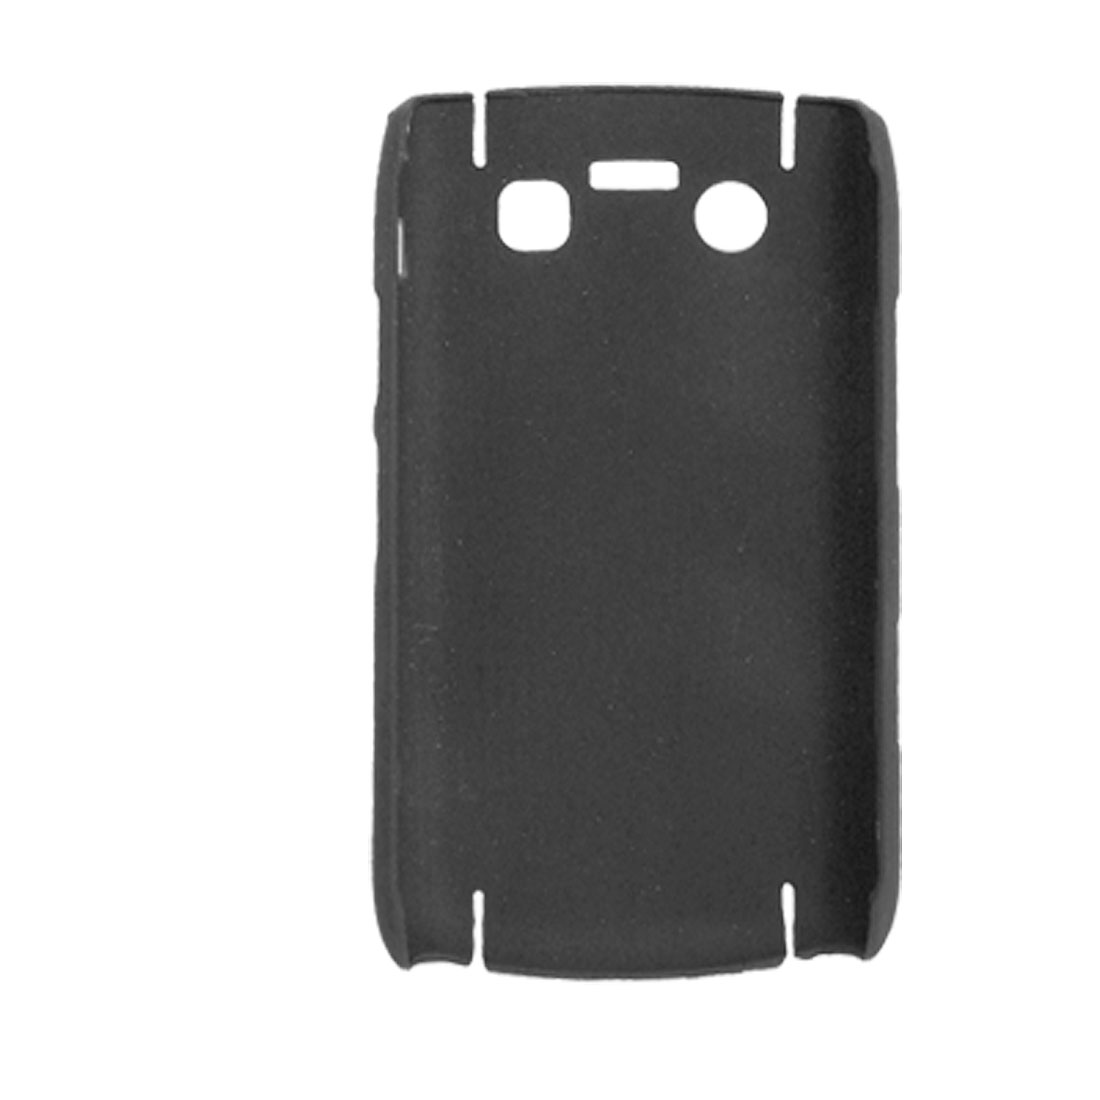 Black Plastic Rubberized Cover Shell for BlackBerry Bold 9700